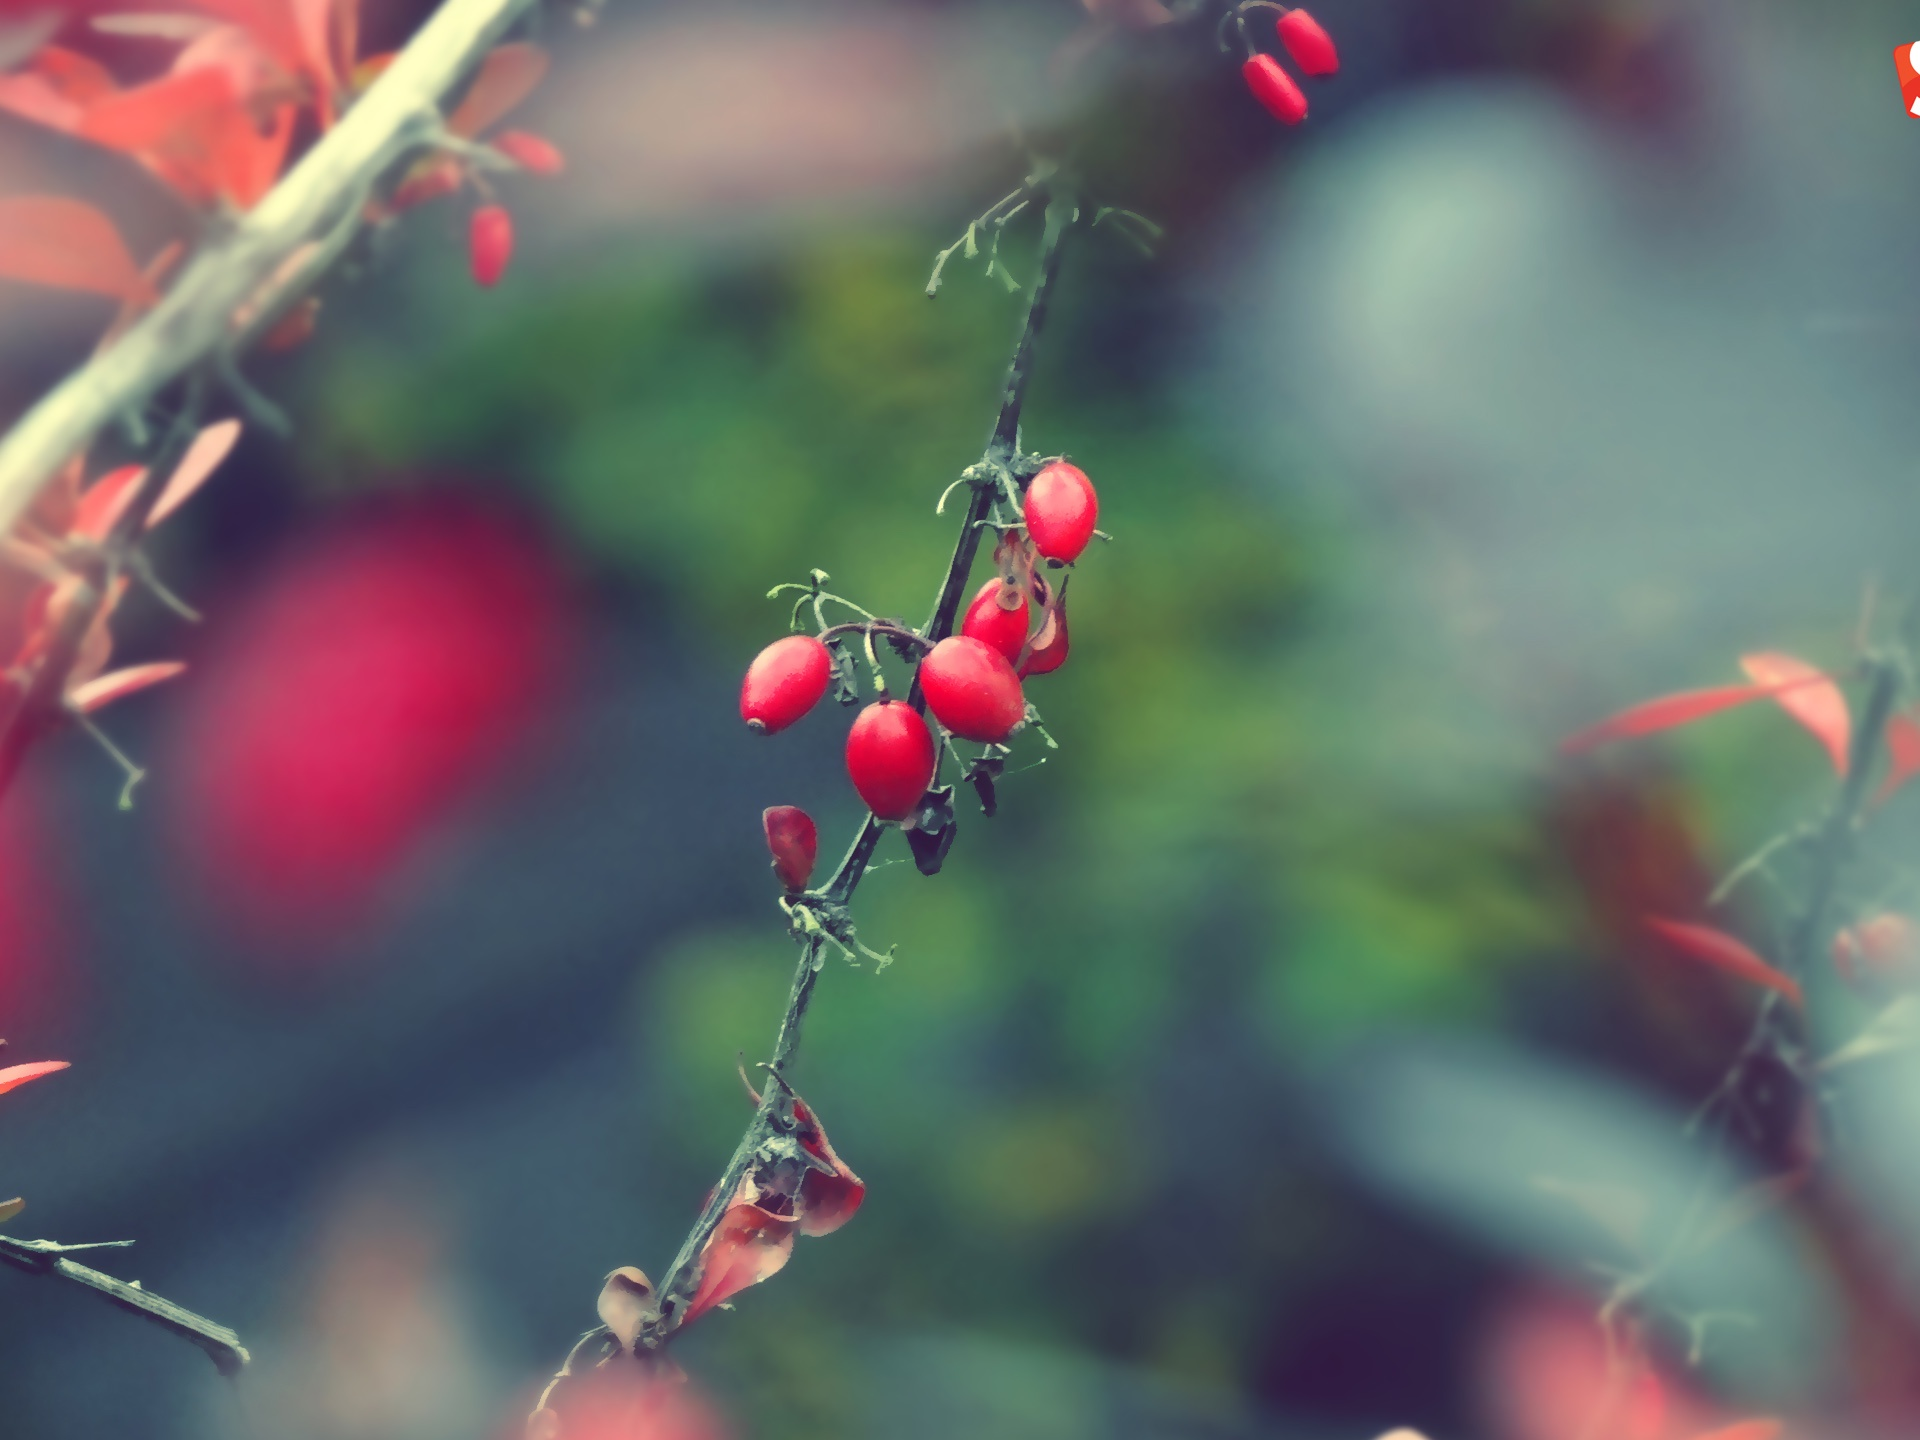 click to free download the wallpaper--Natural Scenery Pics, Red and Ripe Fruits, Autumn is Cheerful and Impressive  1920X1440 free wallpaper download